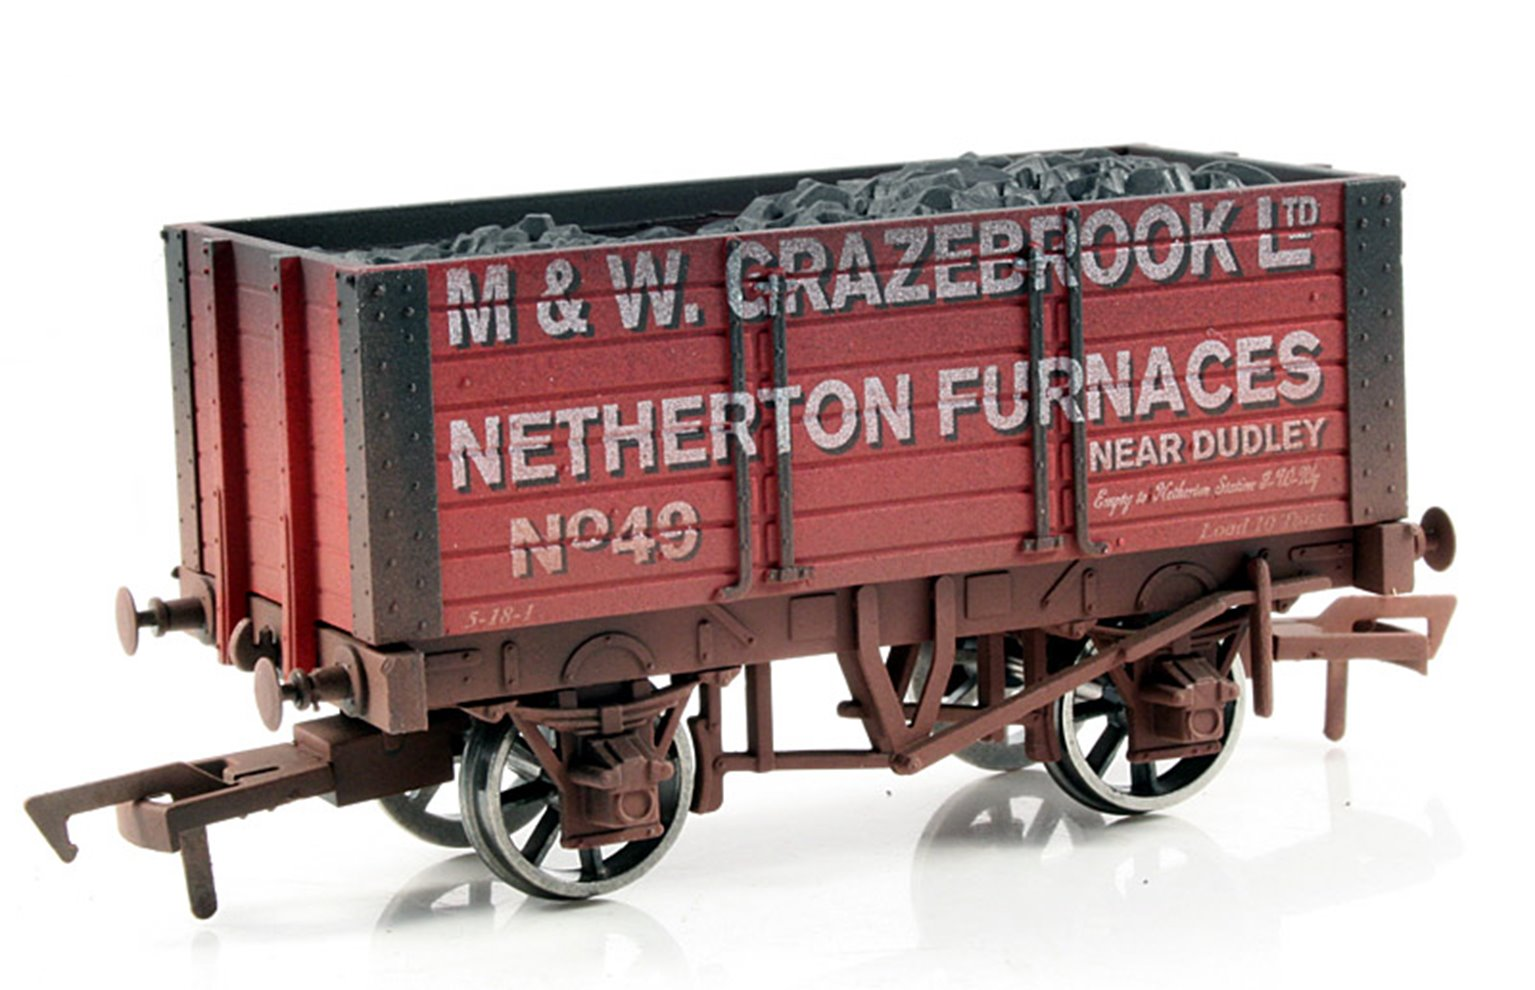 Grazebrook 7 Plank wagon, 9ft chassis - Weathered